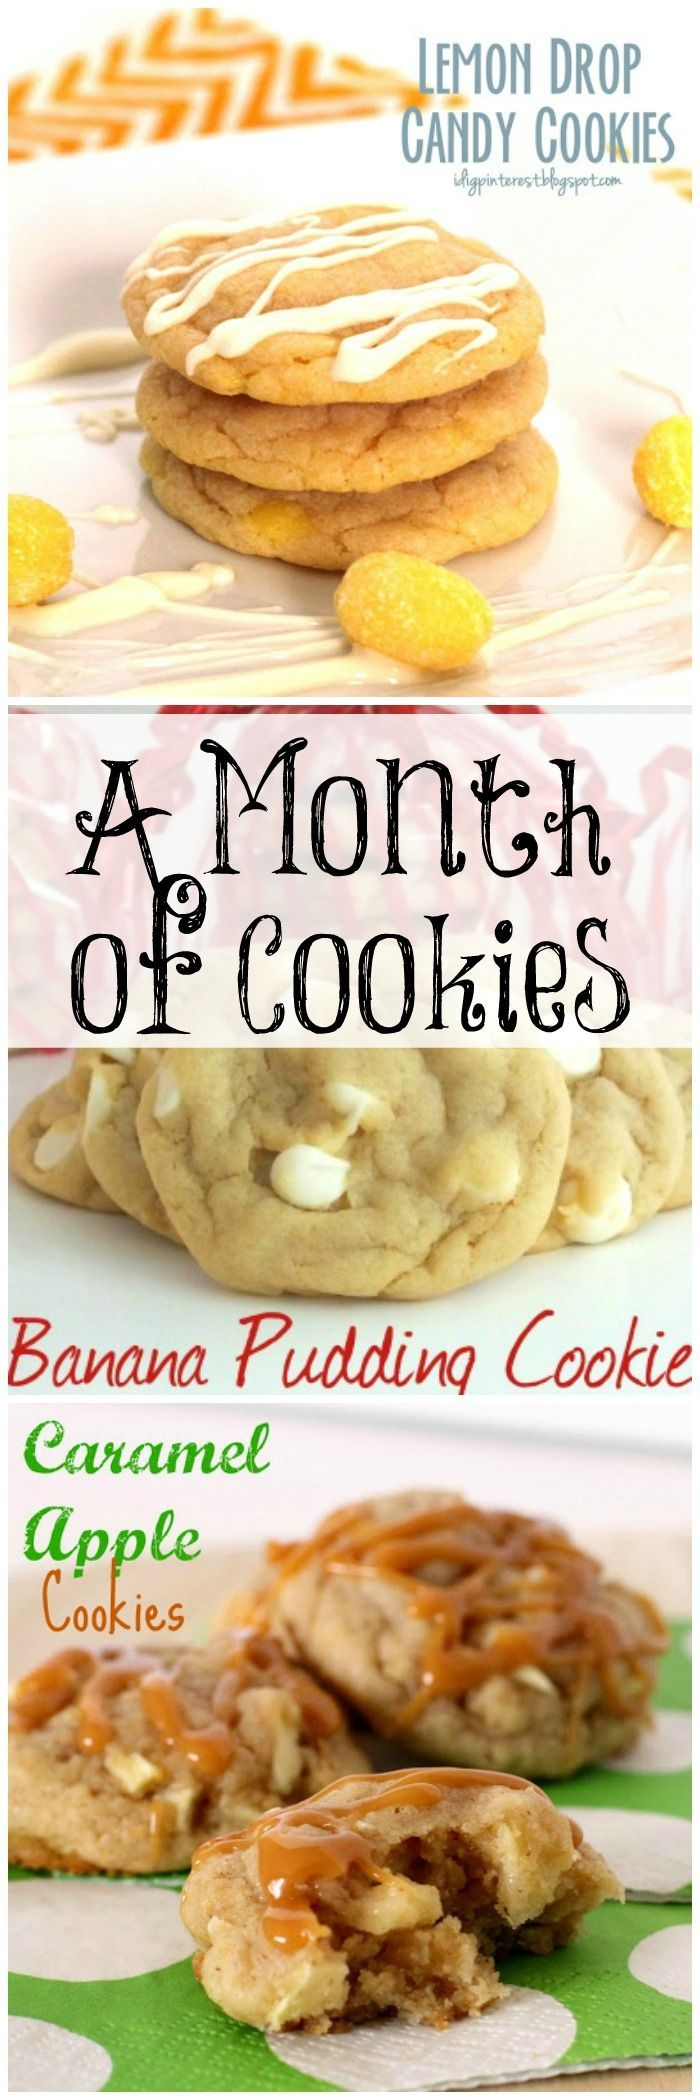 A Month of Cookies - 31 Cookie Recipes